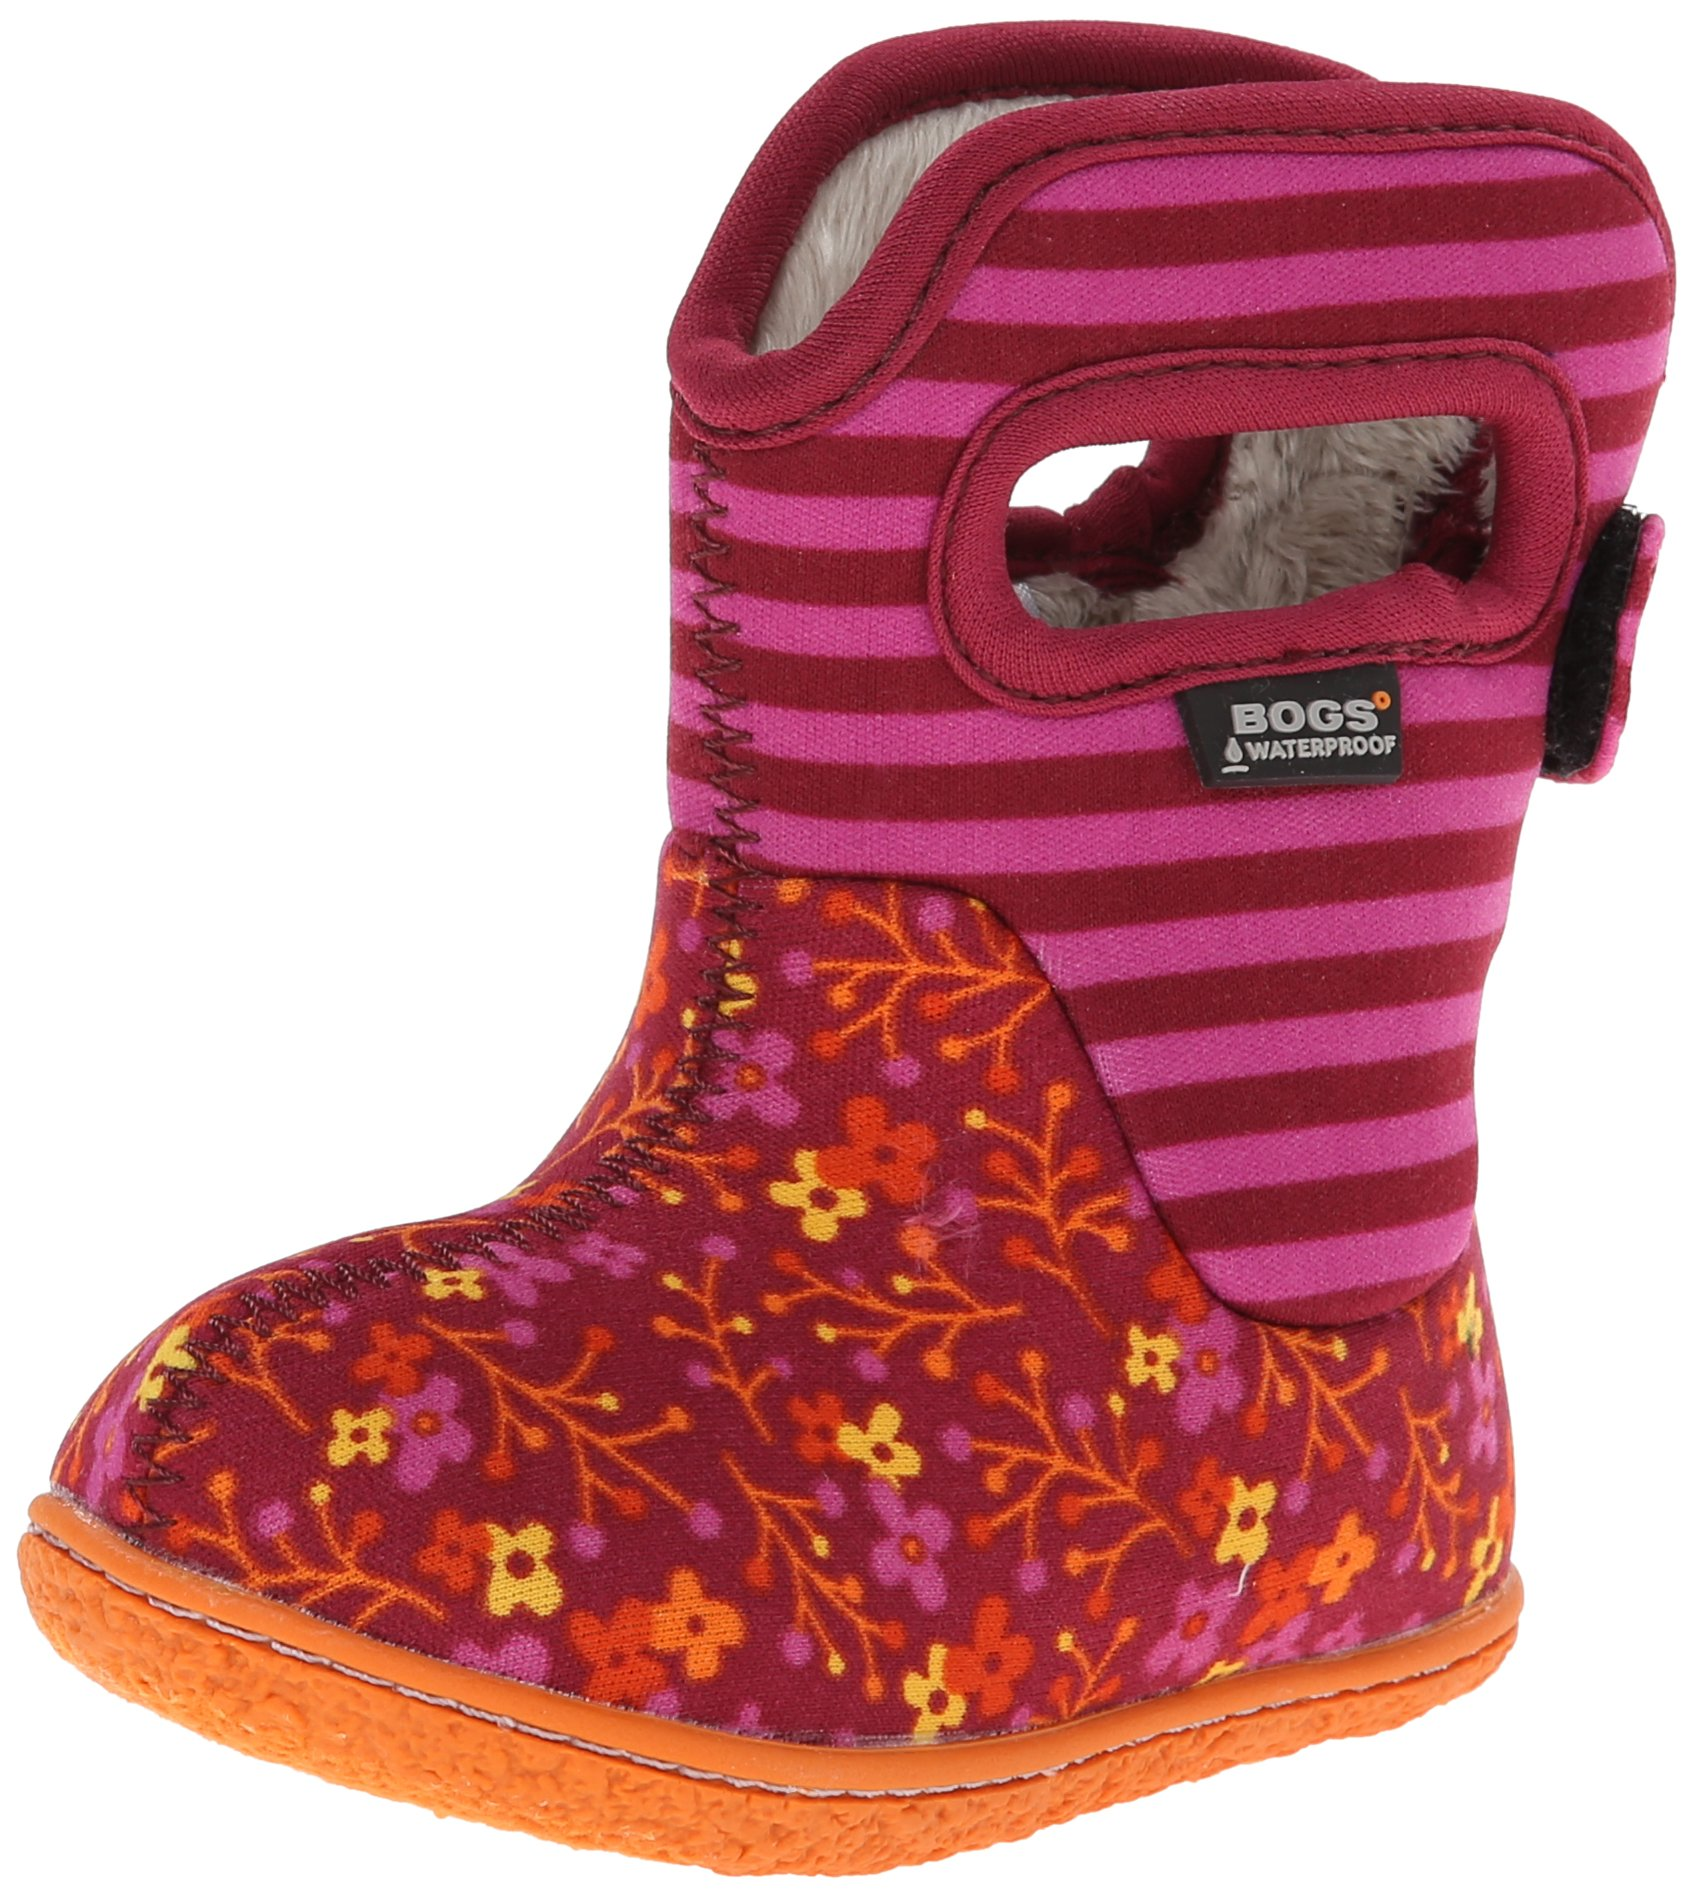 Bogs Baby Bogs Waterproof Insulated Toddler/Kids Rain Boots for Boys and Girls, Flower Stripe Print/Cranberry, 10 M US Toddler